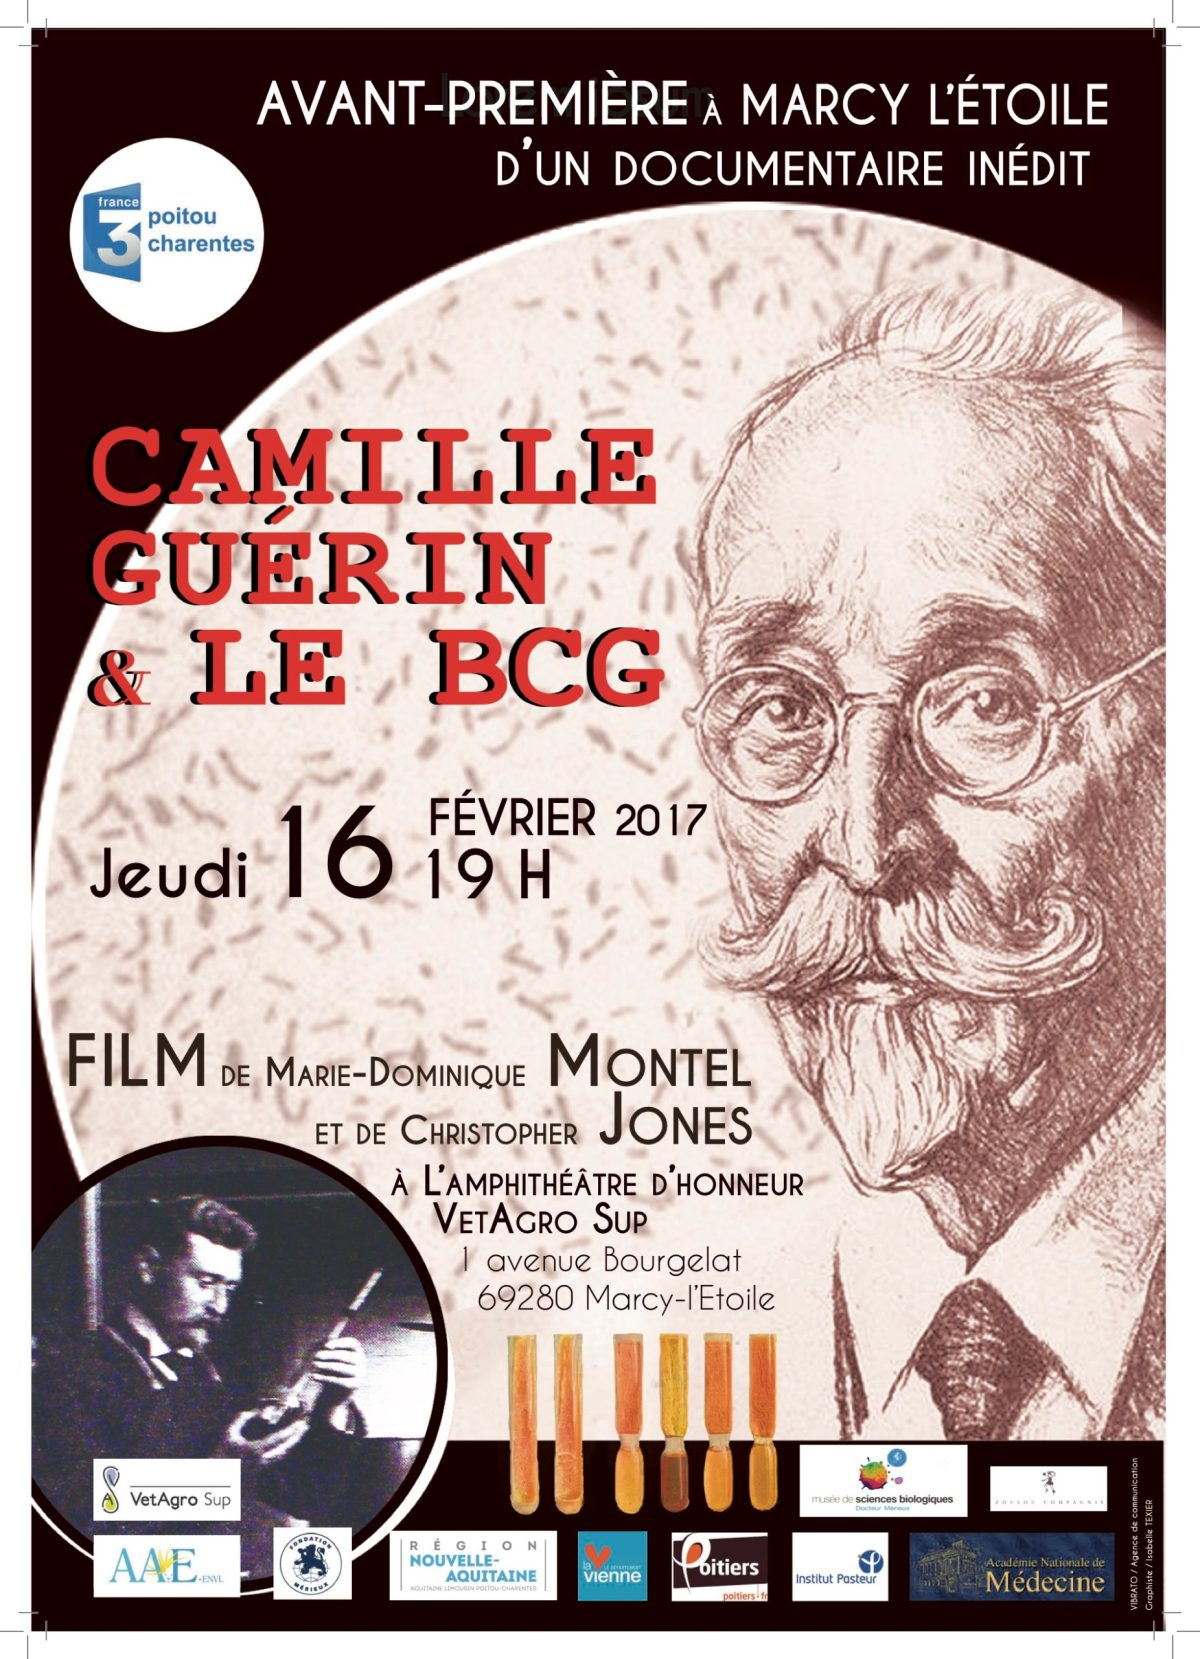 Affiche de la projection du documentaire Camille Guérin et le BCG